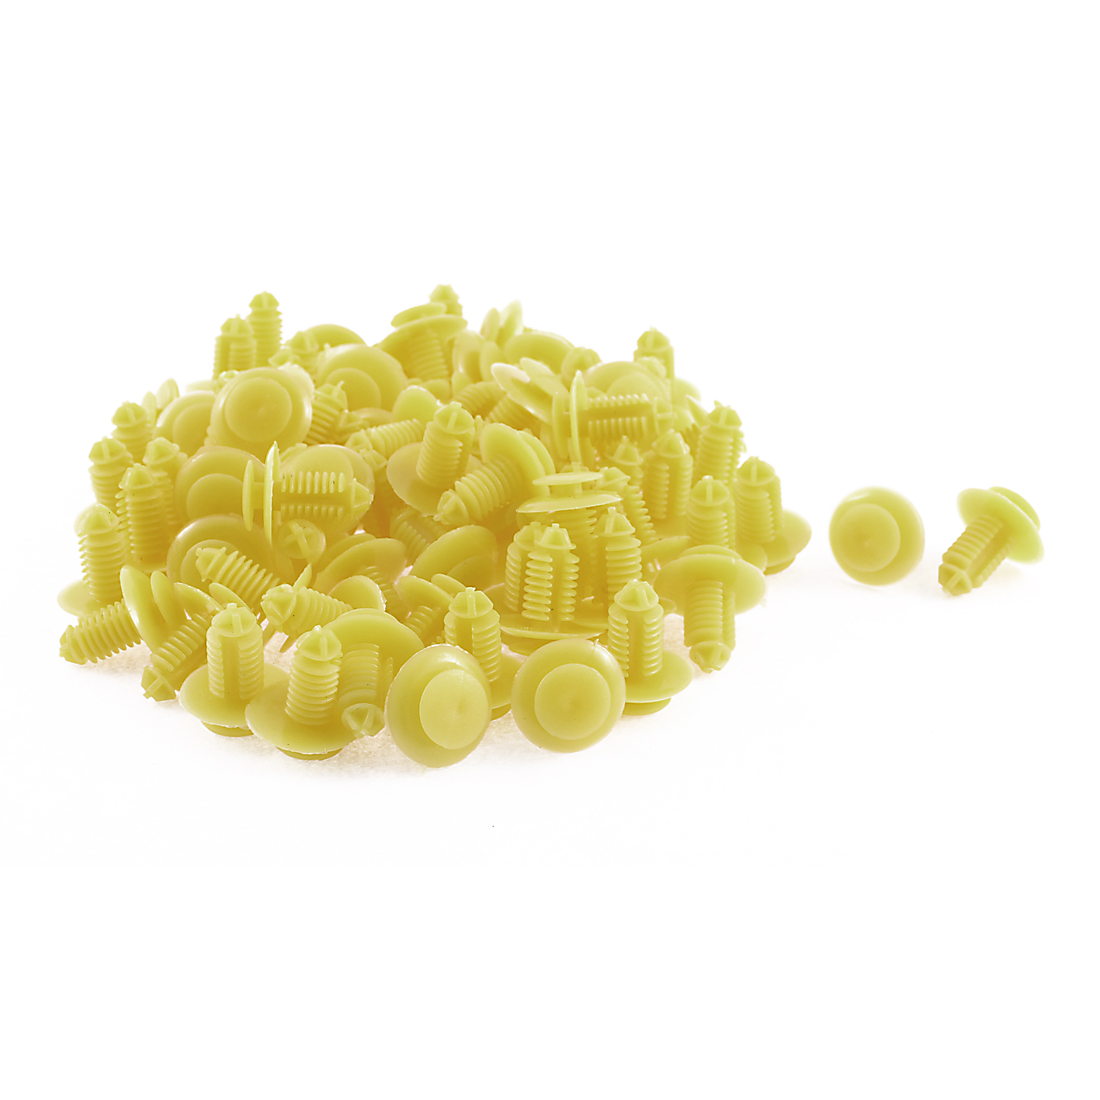 100 Pcs 10mm x 20mm Yellow Plastic Bumper Moulding Trim Rivets Fastener Clips